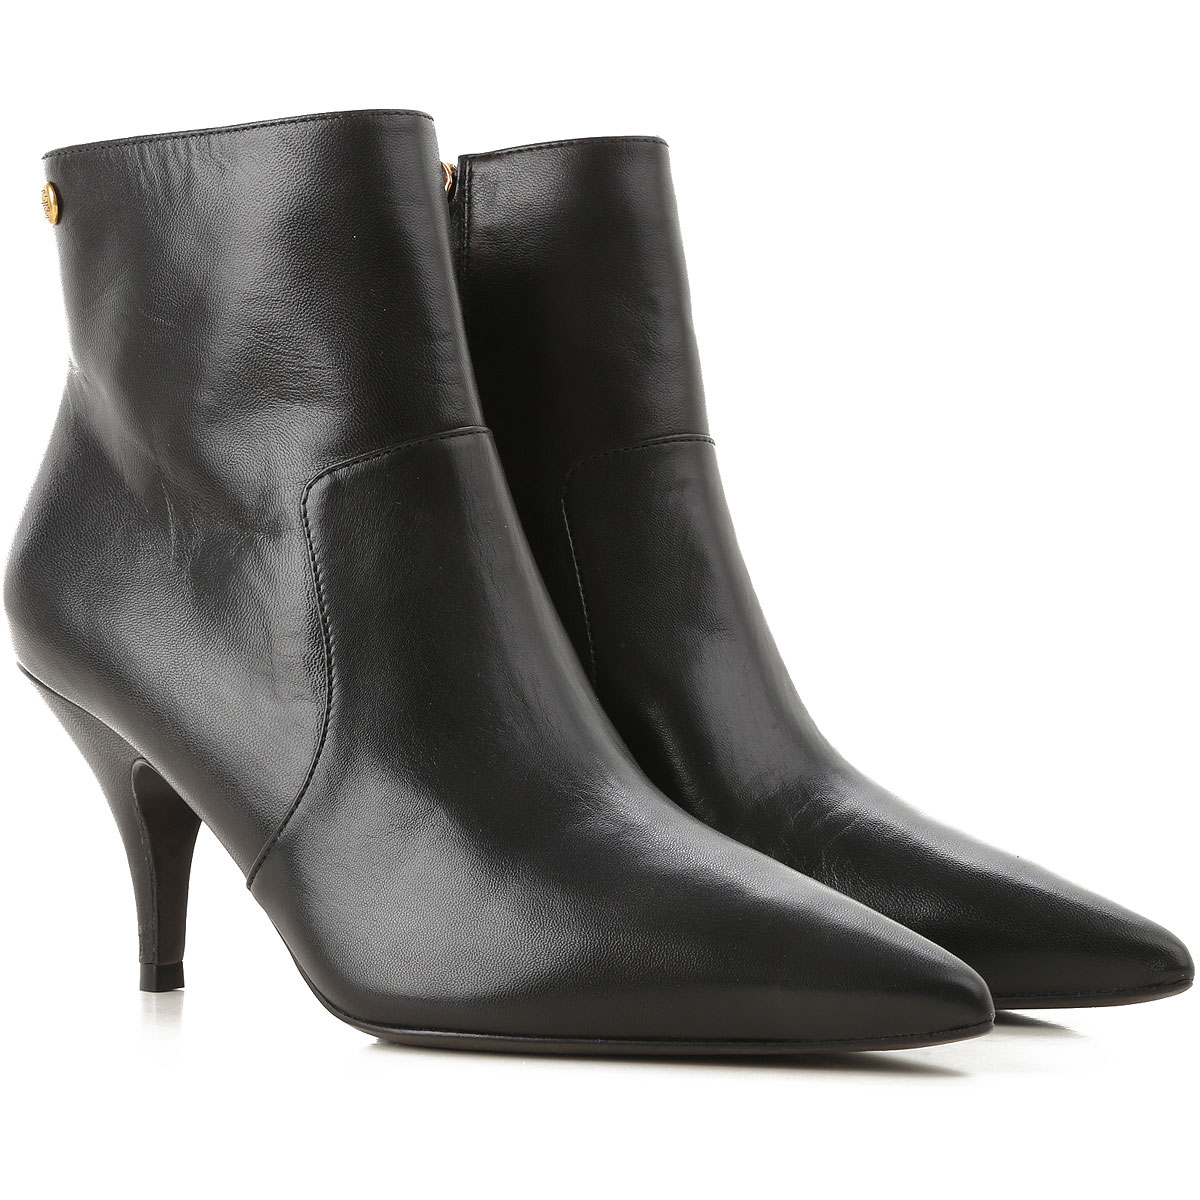 Tory Burch Boots for Women Booties On Sale USA - GOOFASH